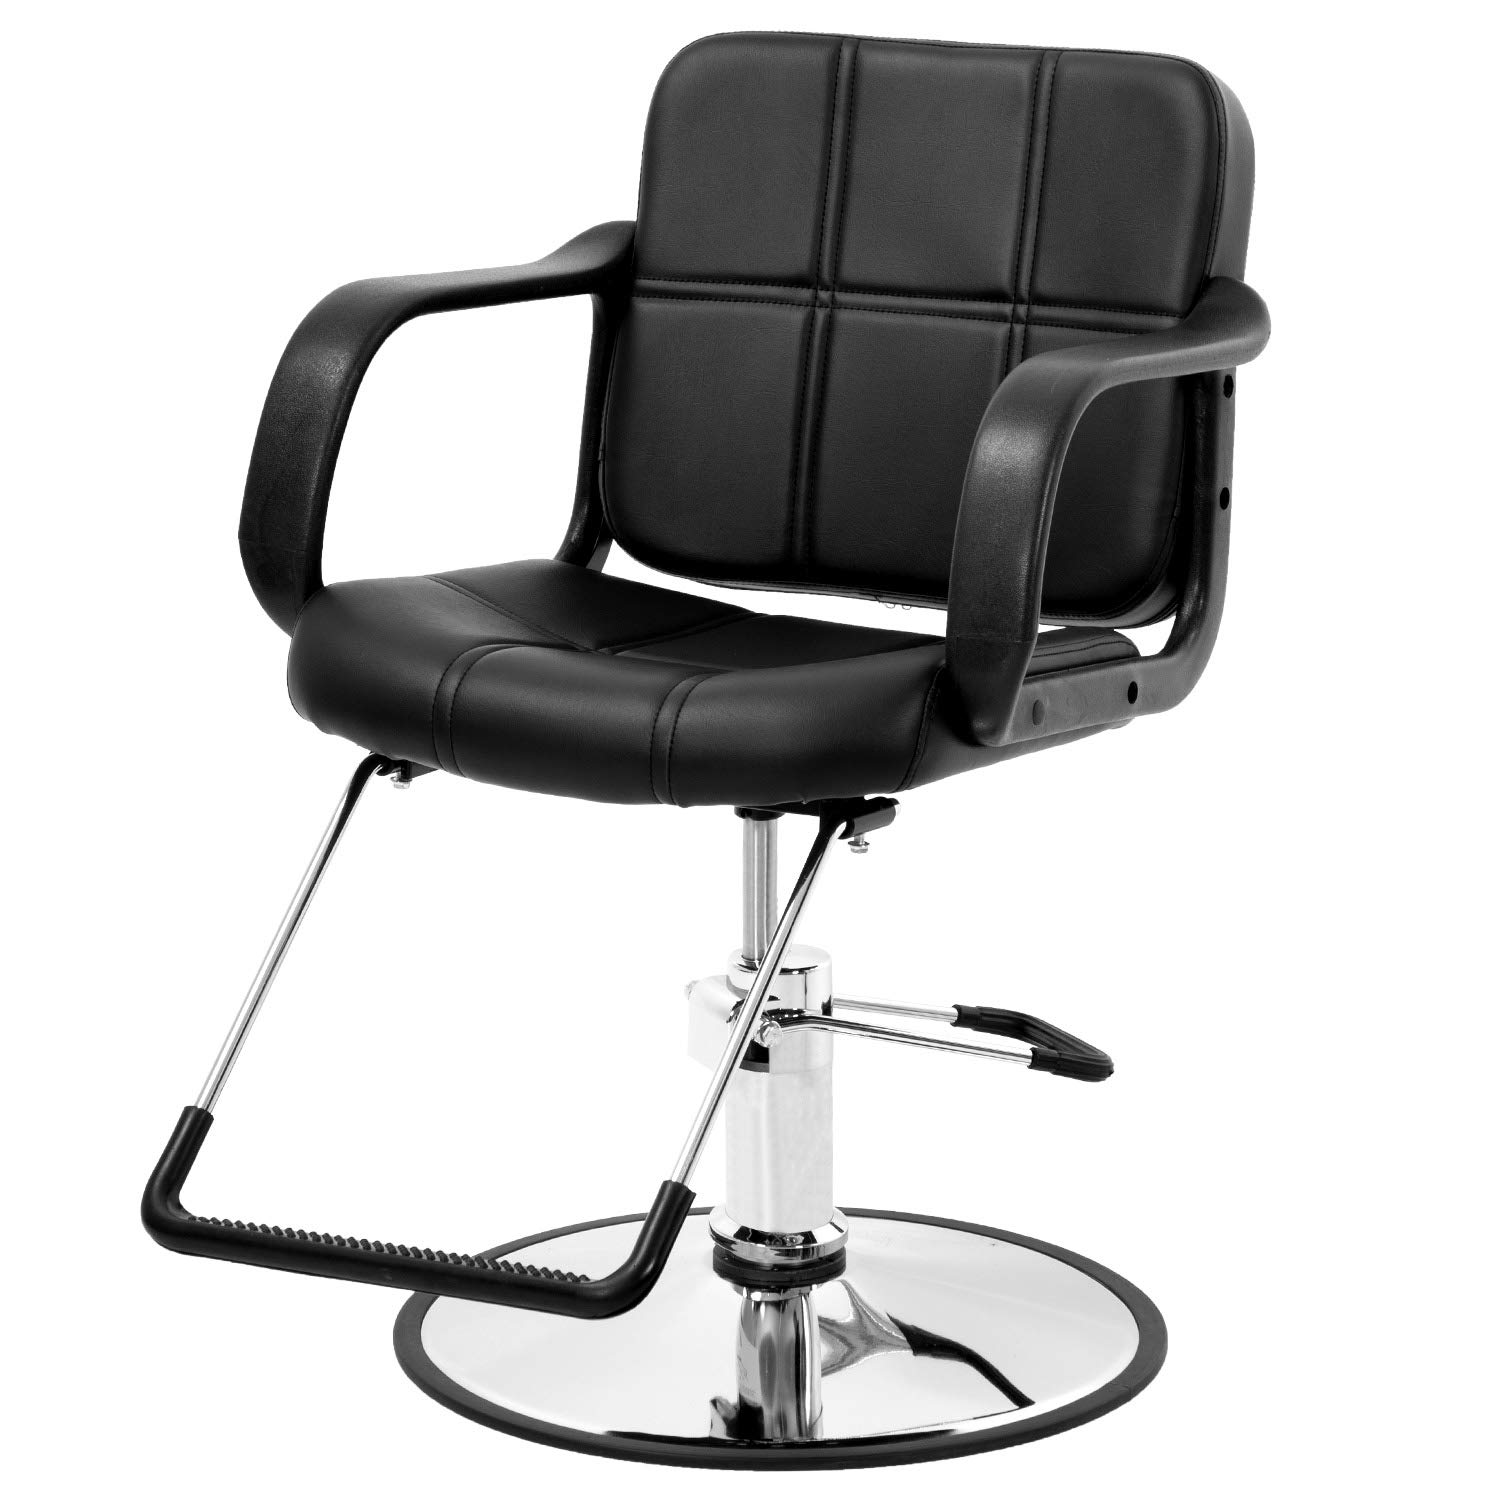 BestSalon Salon High material Chair Heavy Super sale period limited Duty Beauty Styling Barb